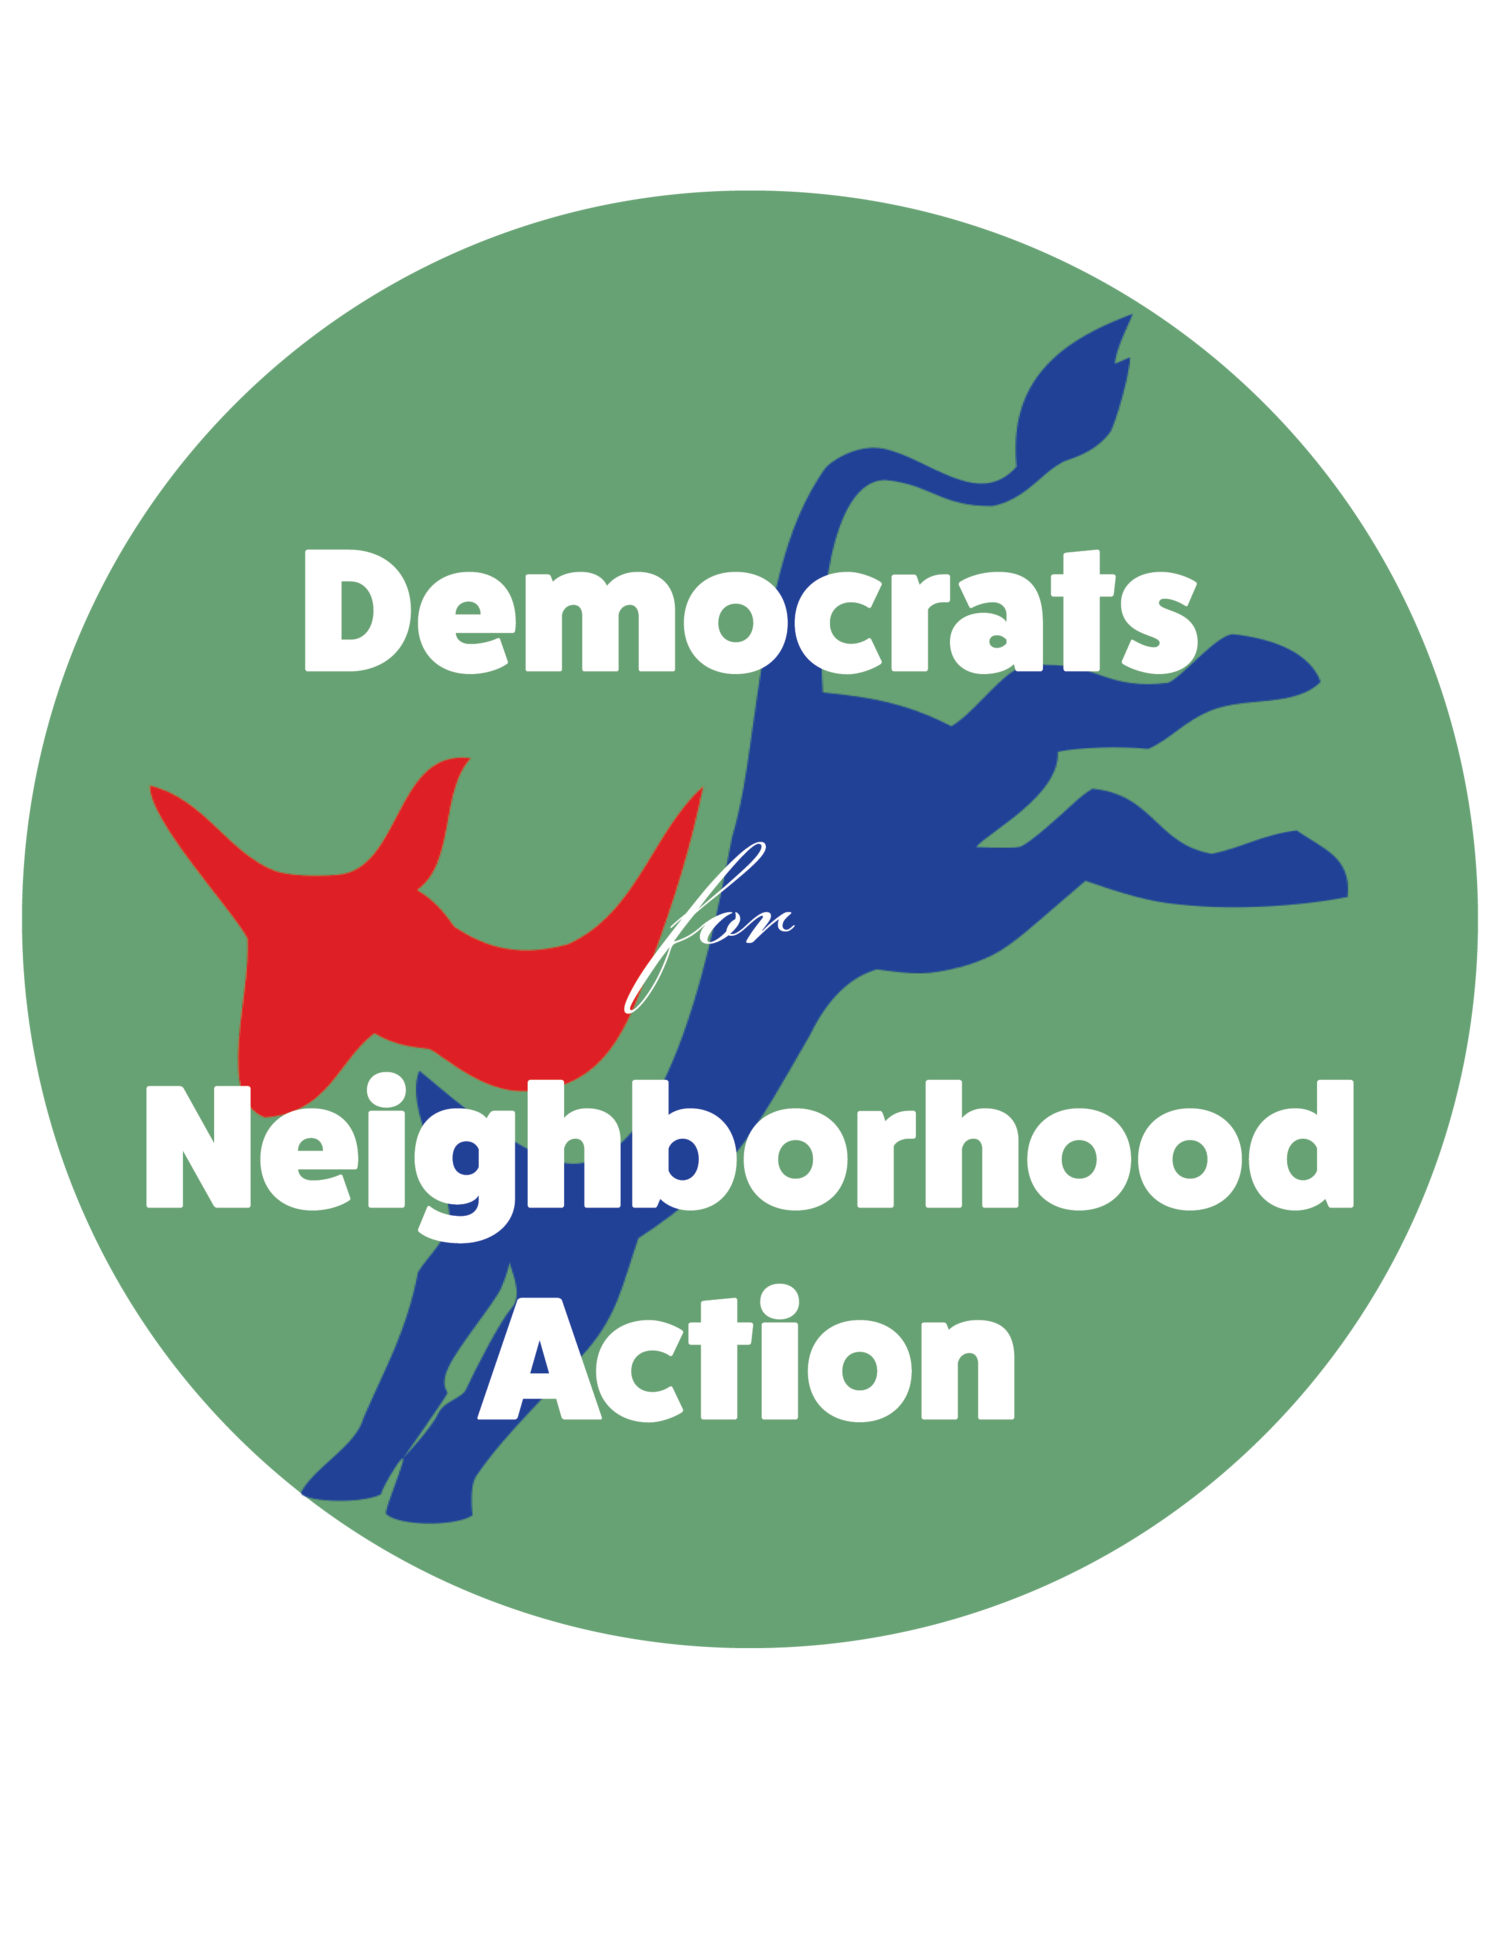 Democrats for Neighborhood Action